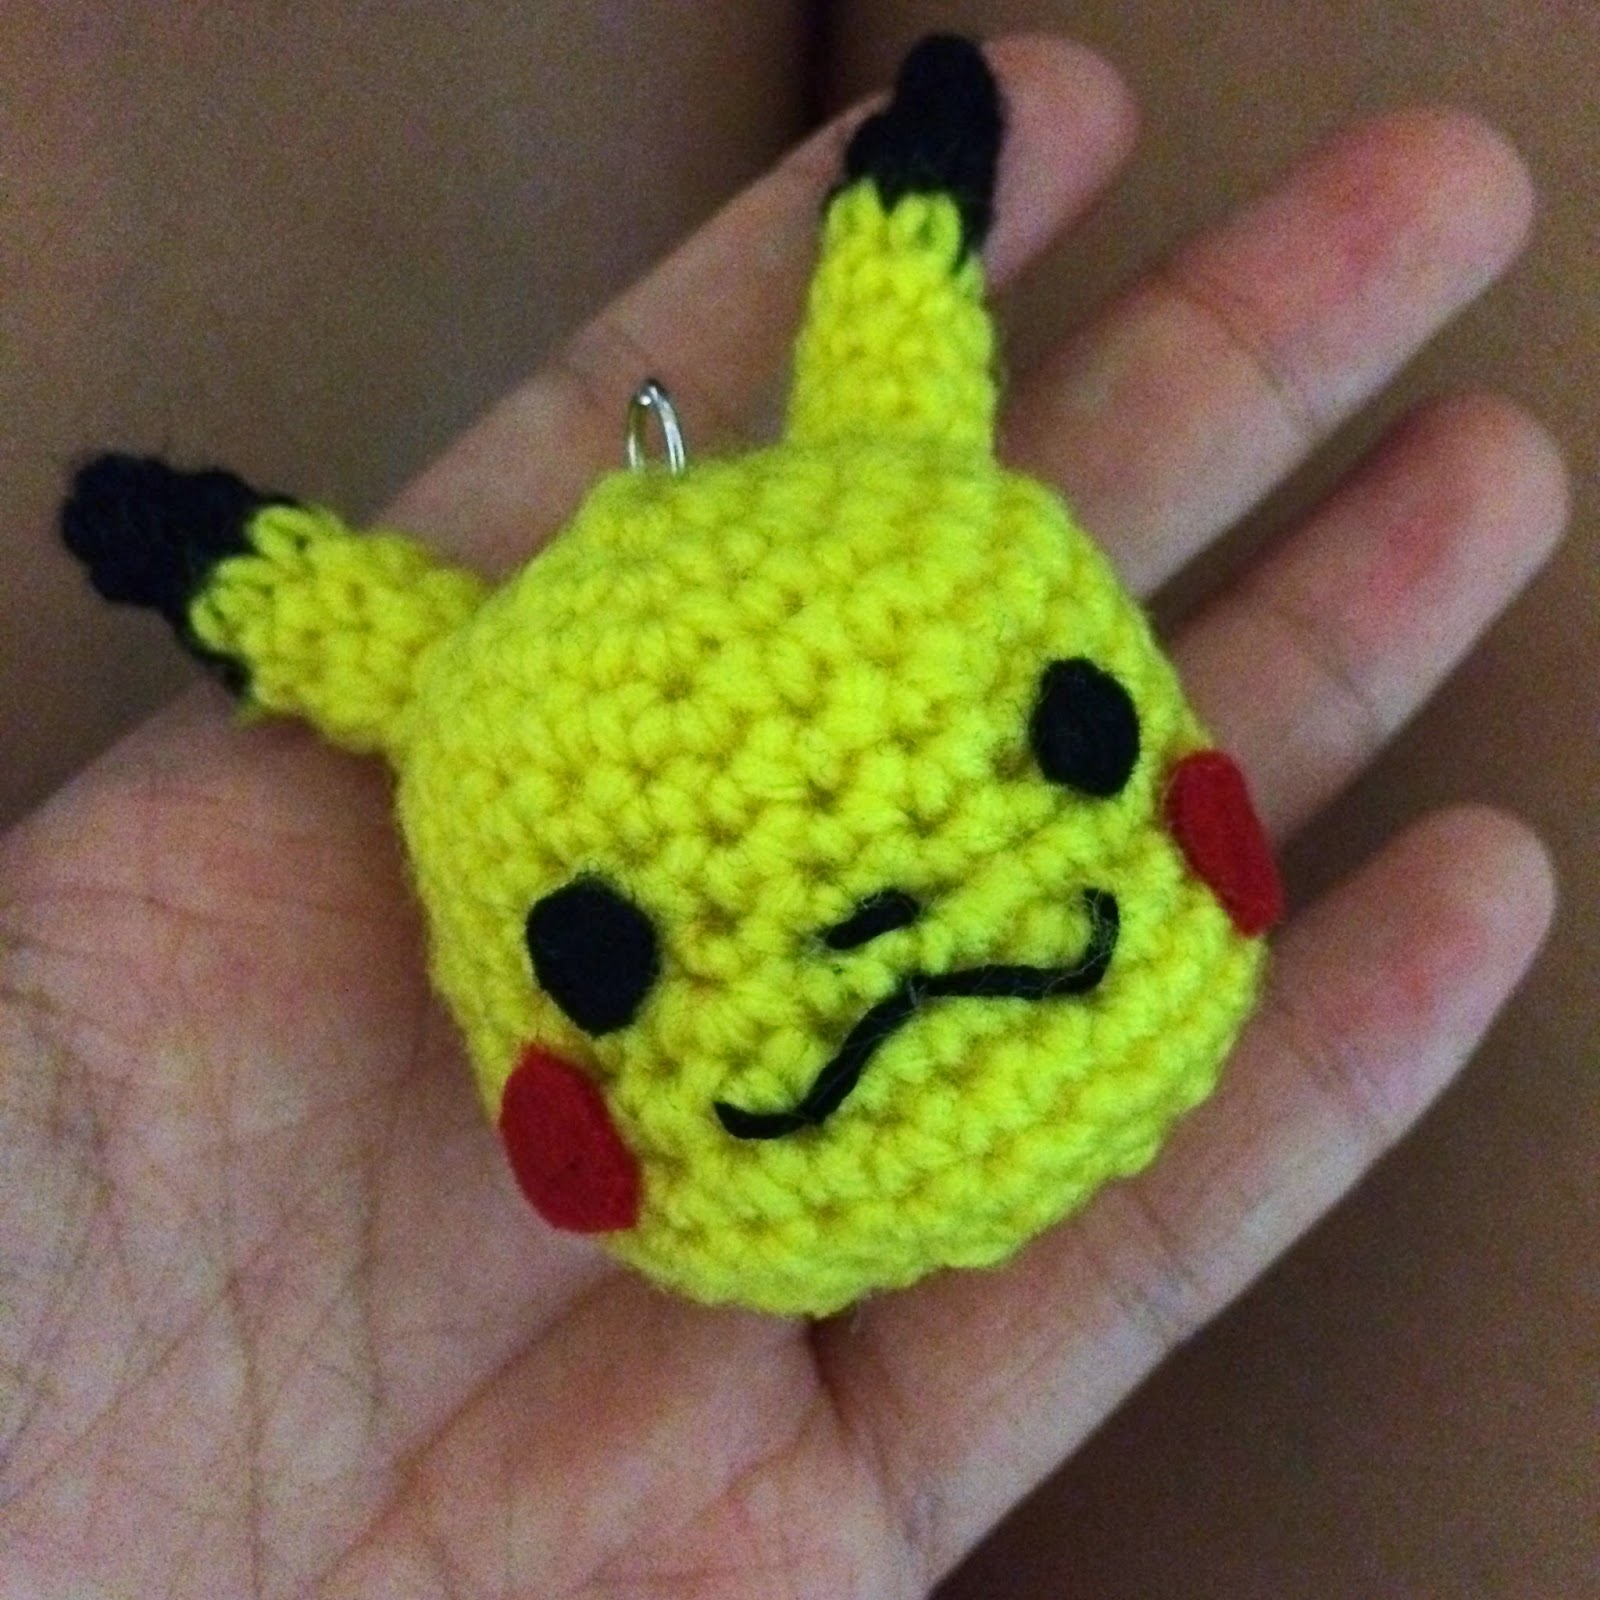 Drunk with Caffeine: My first amigurumi pattern! Pikachu head keychain.